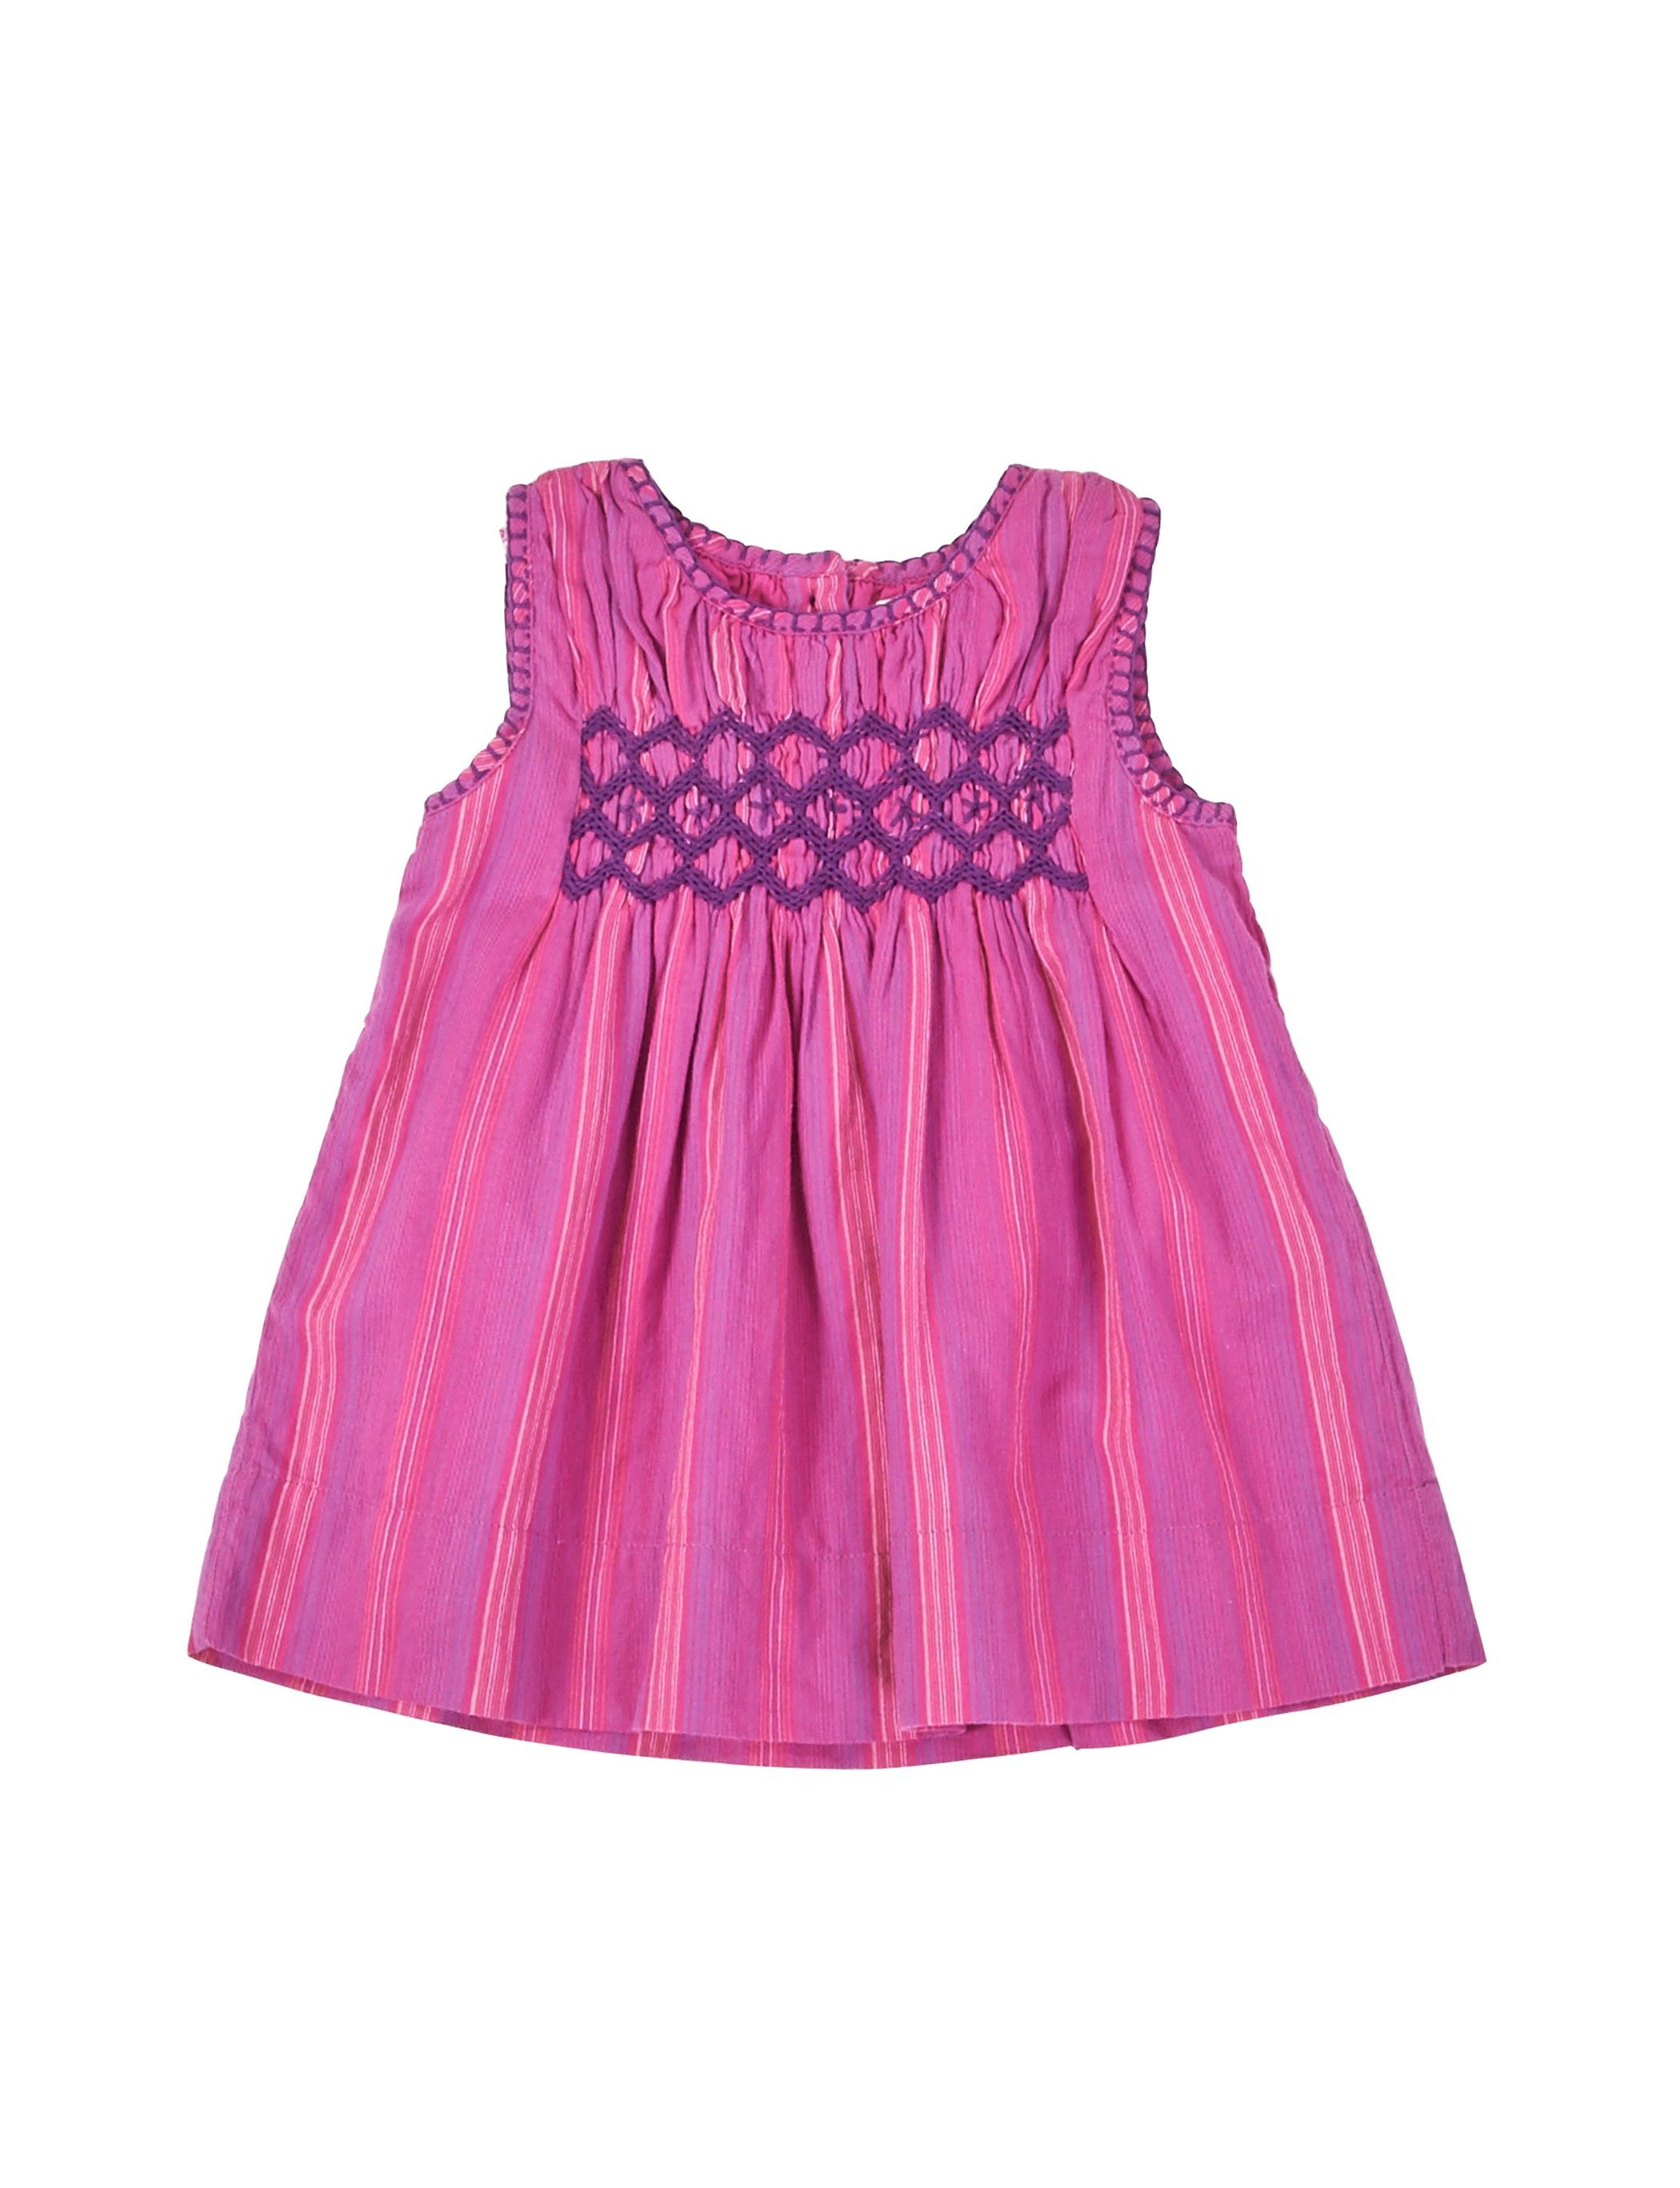 a60c1ab9c5d2 Baby Carmella Dress - Dresses + Bloomers - Categories - baby girls ...